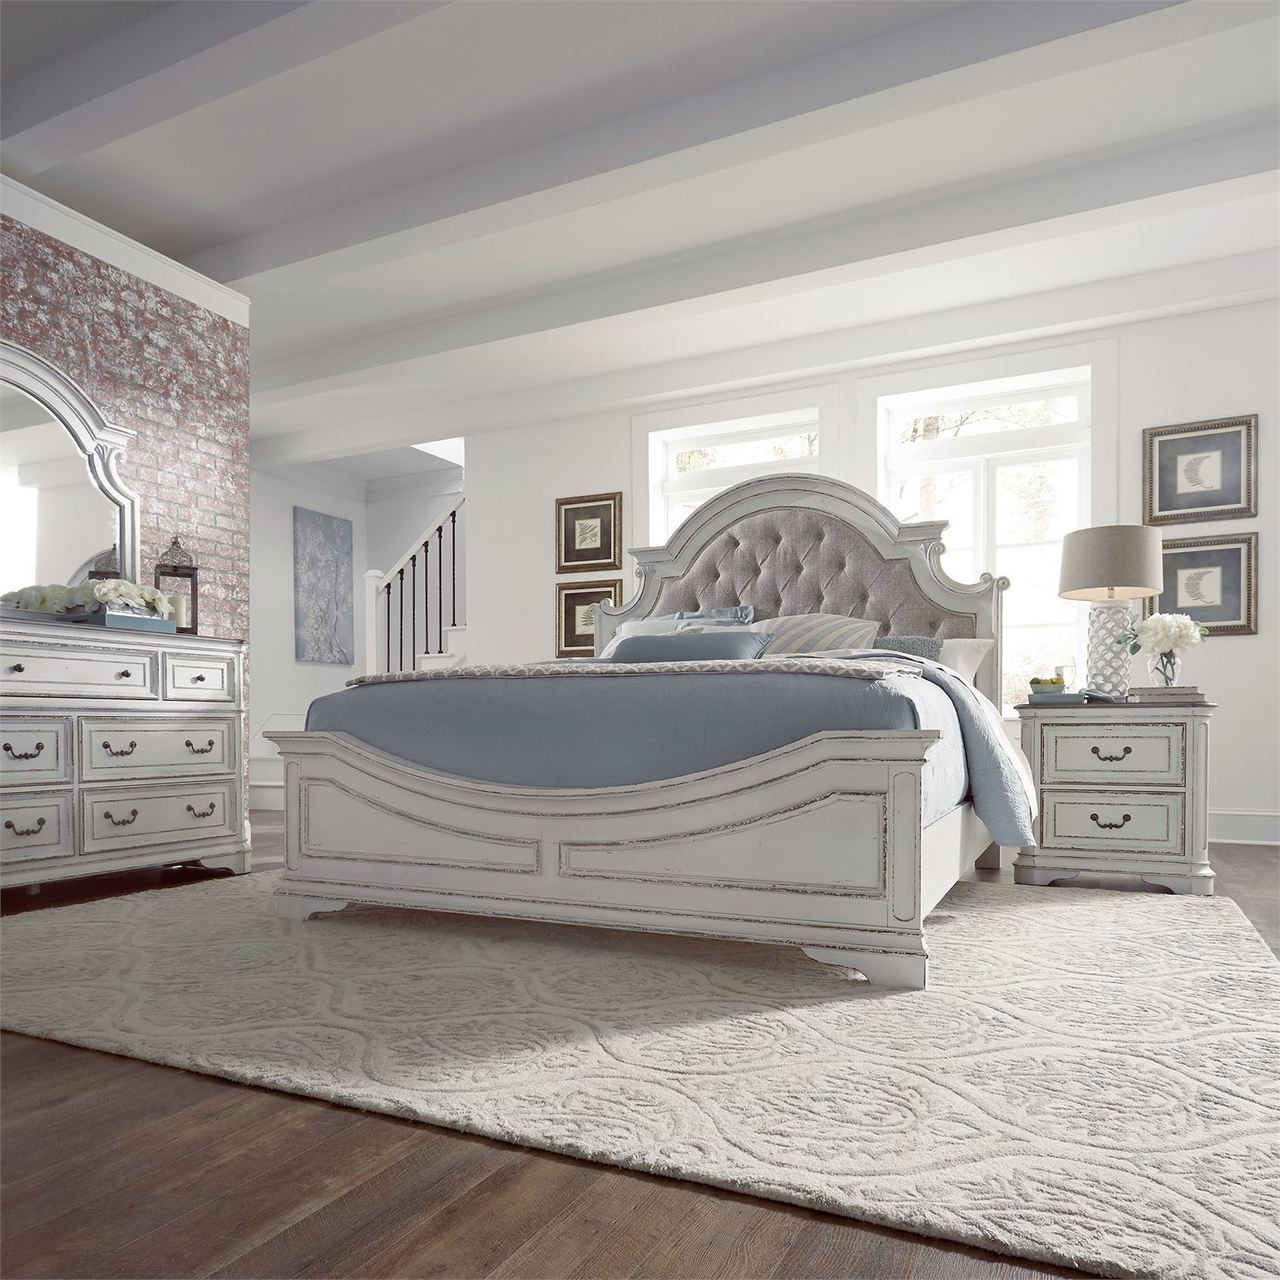 Cheap Furniture Free Delivery: Magnolia Manor Antique White Upholstered Bedroom Set By